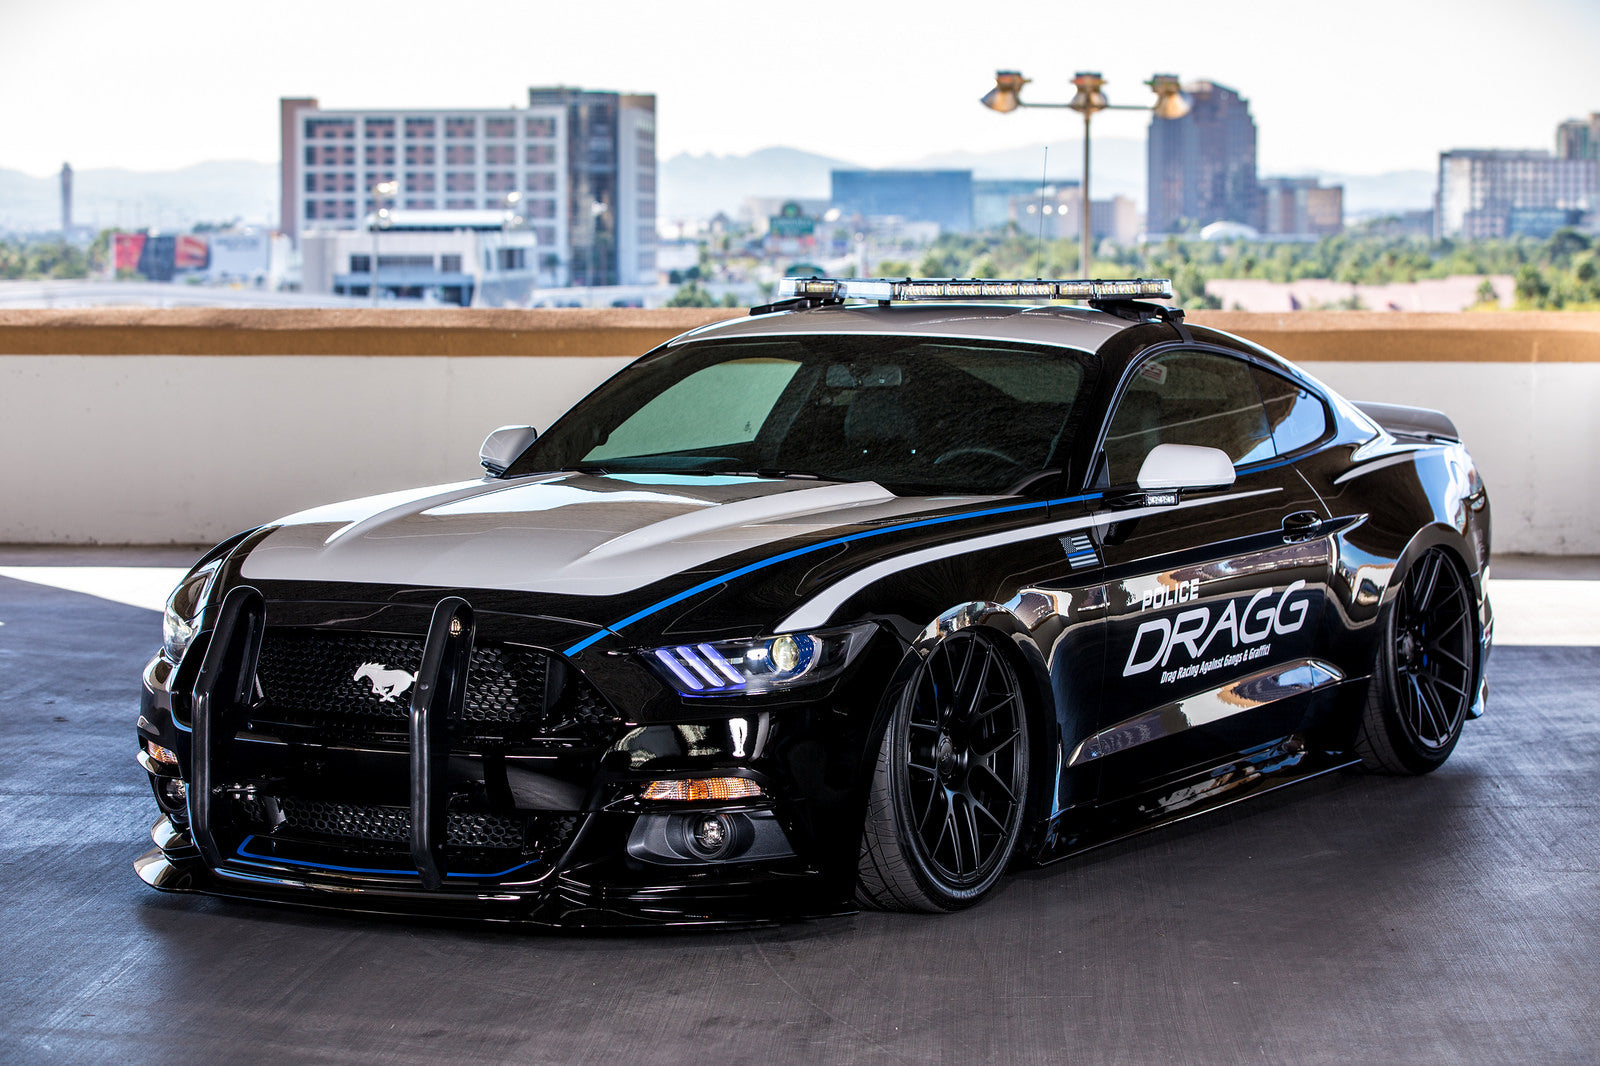 2015-DRAGG-Mustang-Ecoboost-4